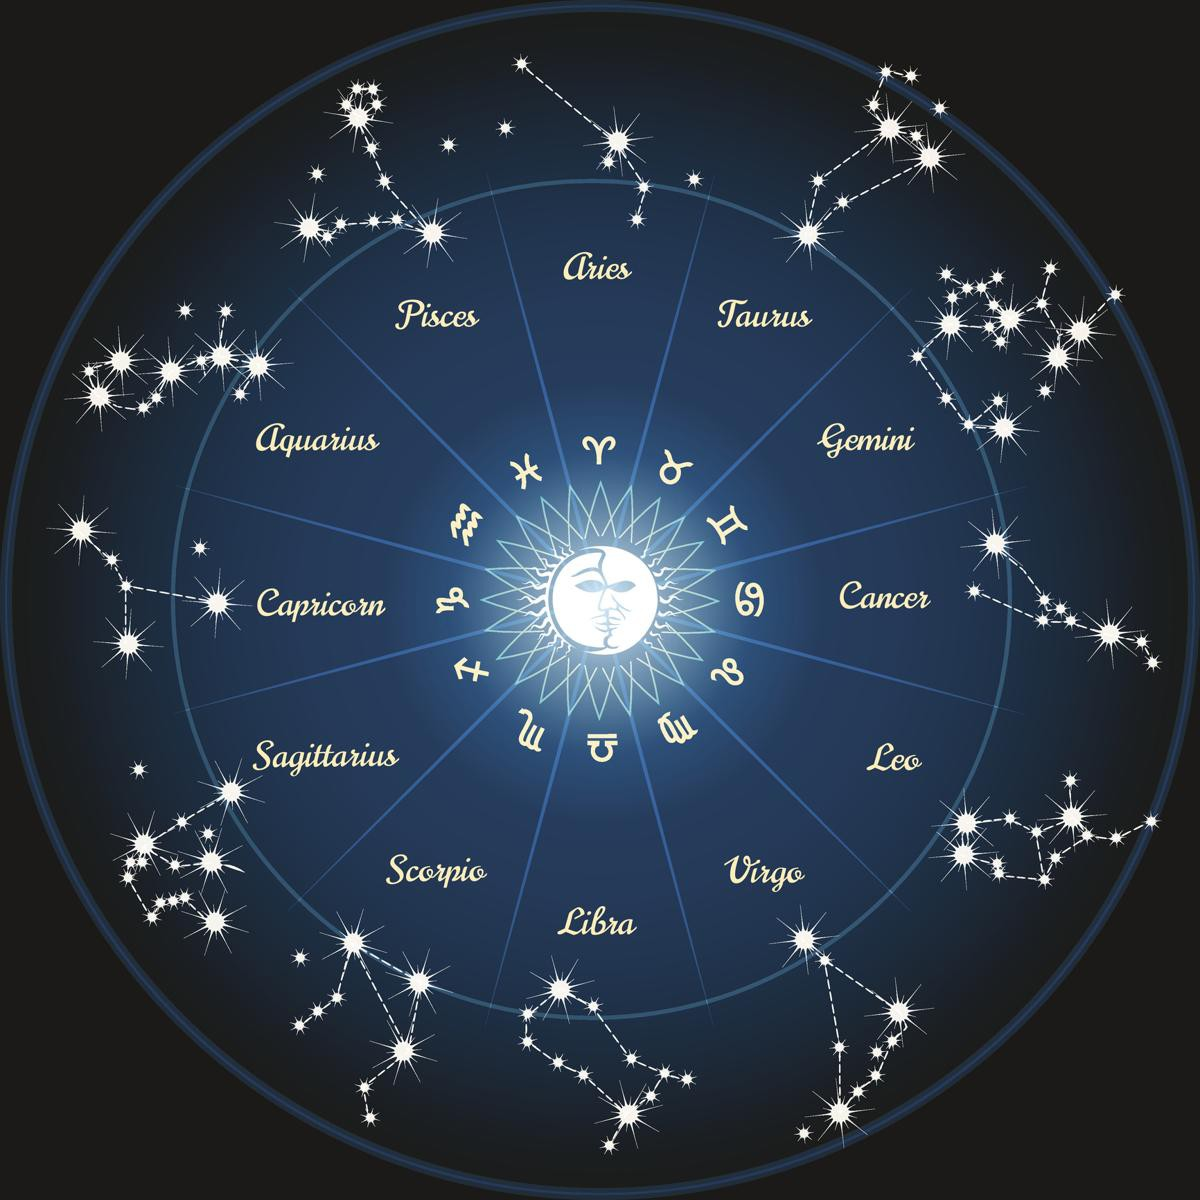 1200-536964334-circle-with-zodiac-constellations